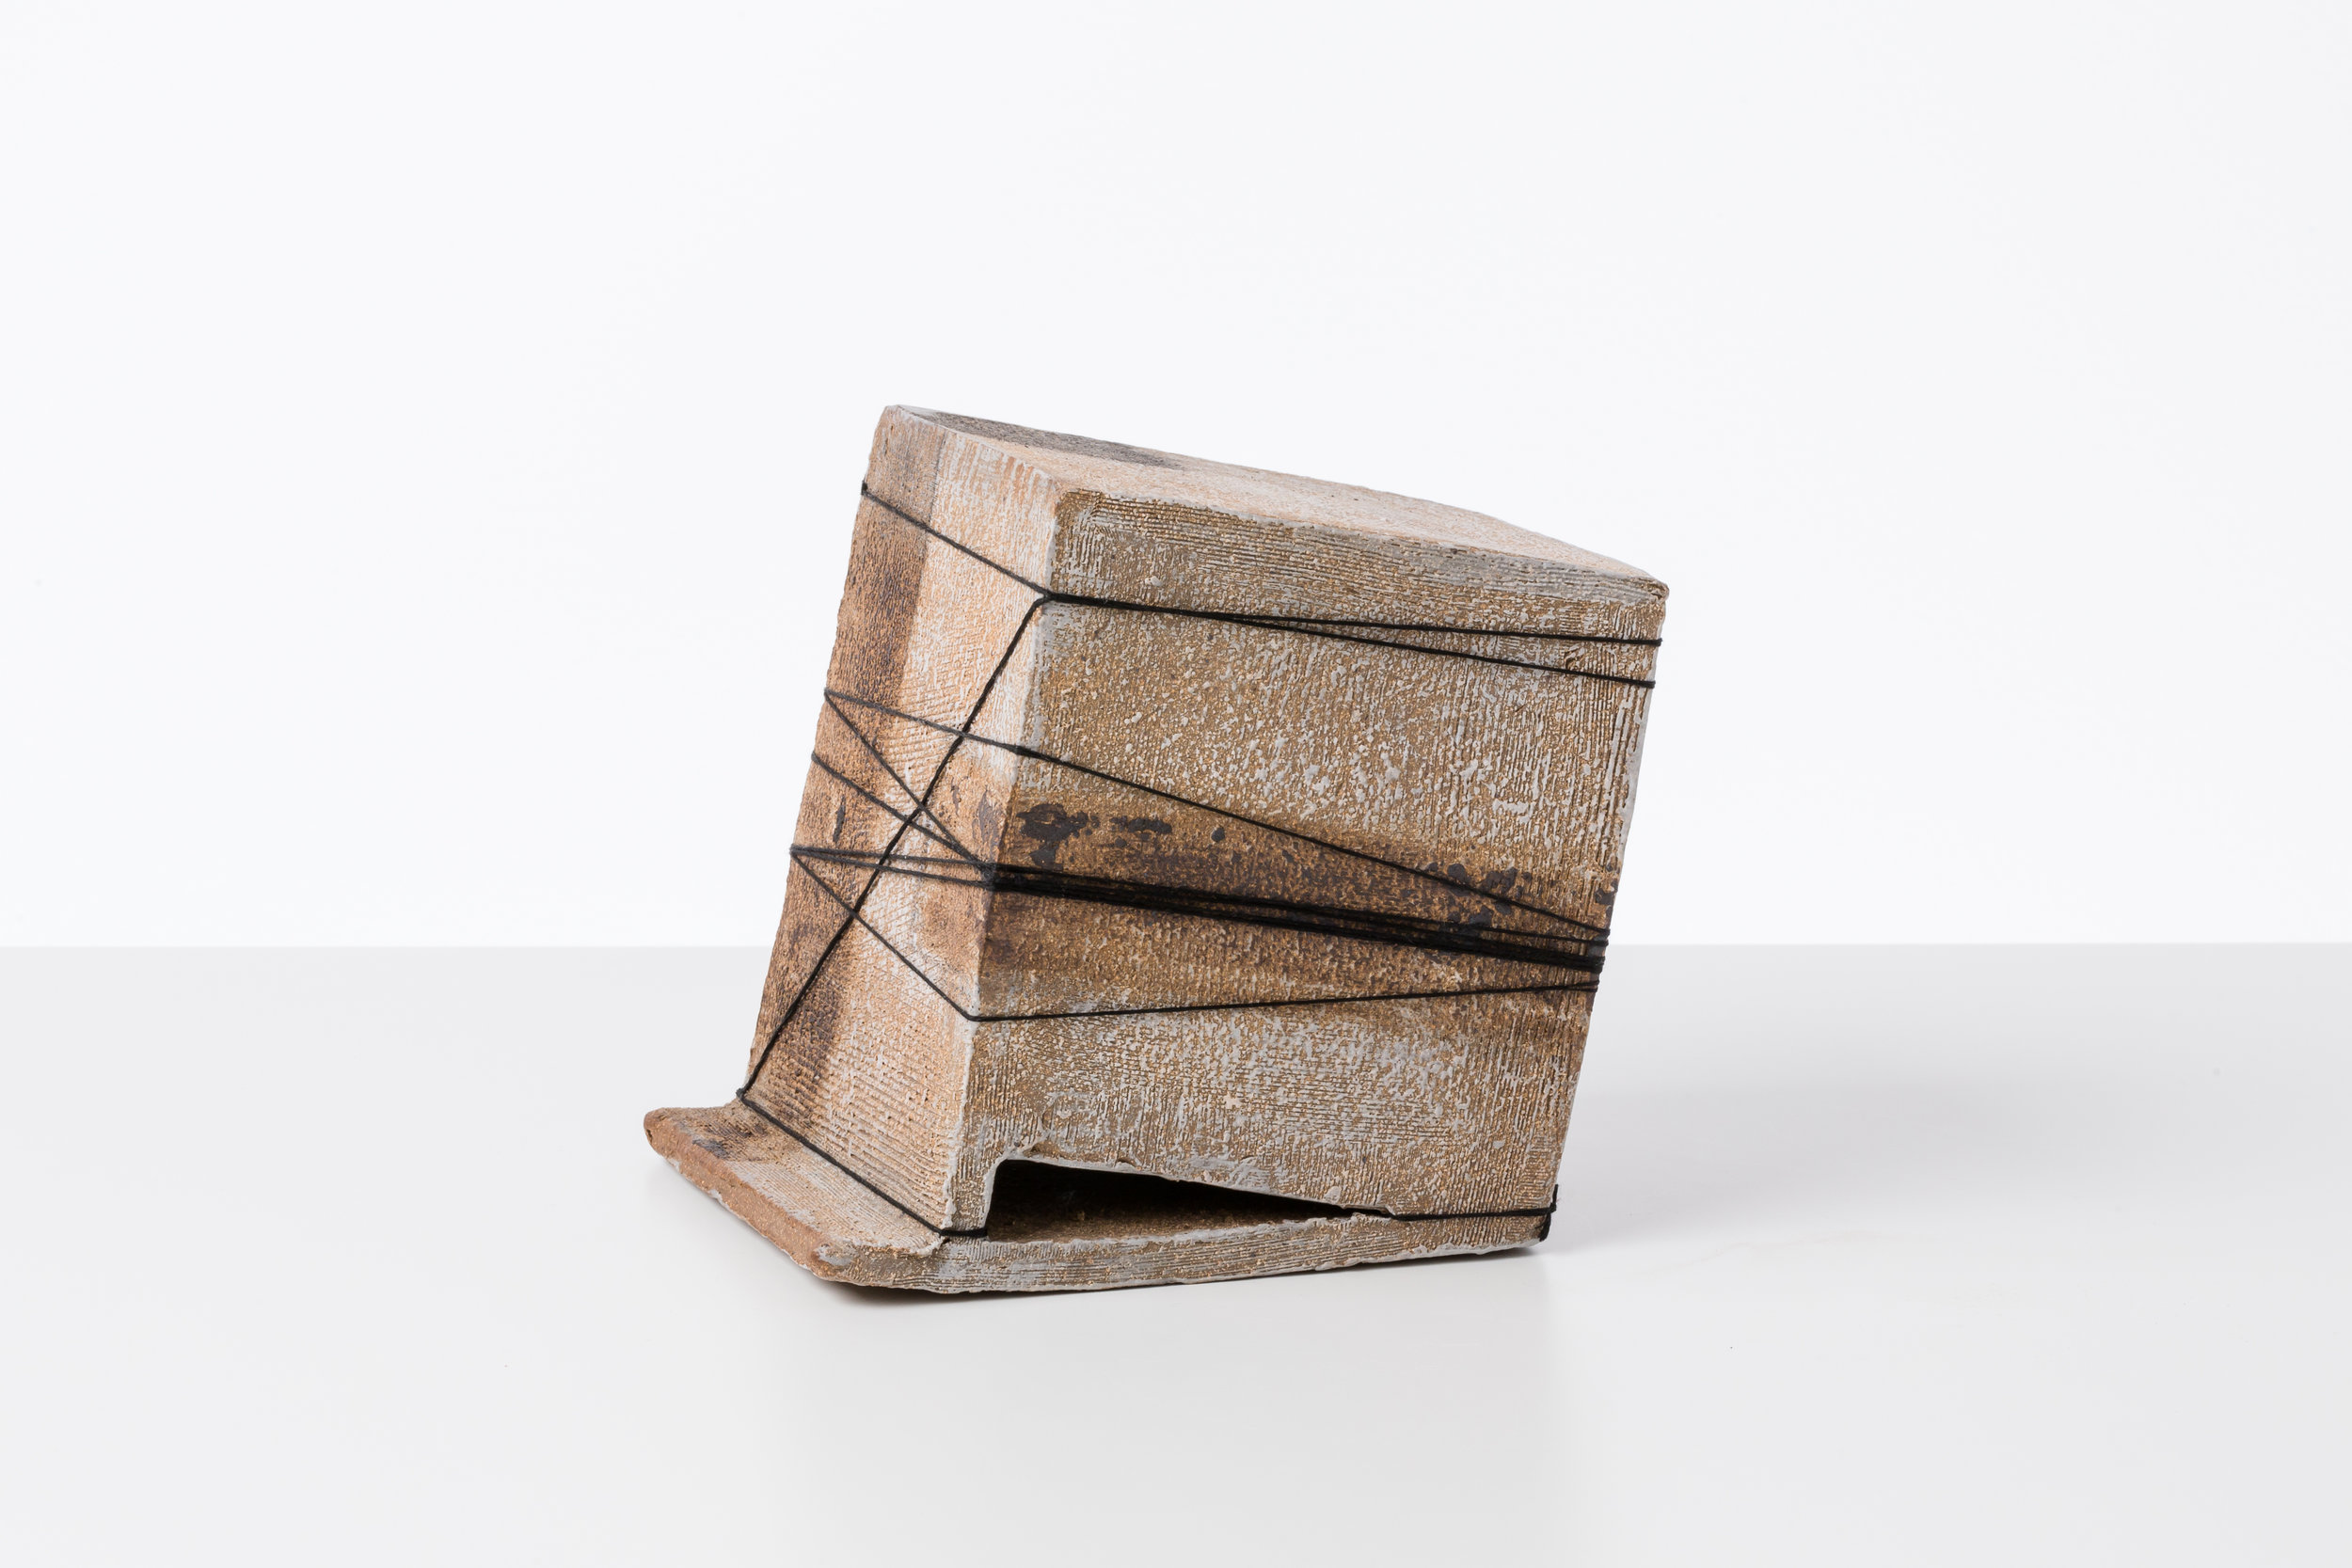 Toni Ross  Untitled (TR735)  ,  2015 stoneware, slip and cotton string 6 1/2 x 6 x 5 1/4 in.